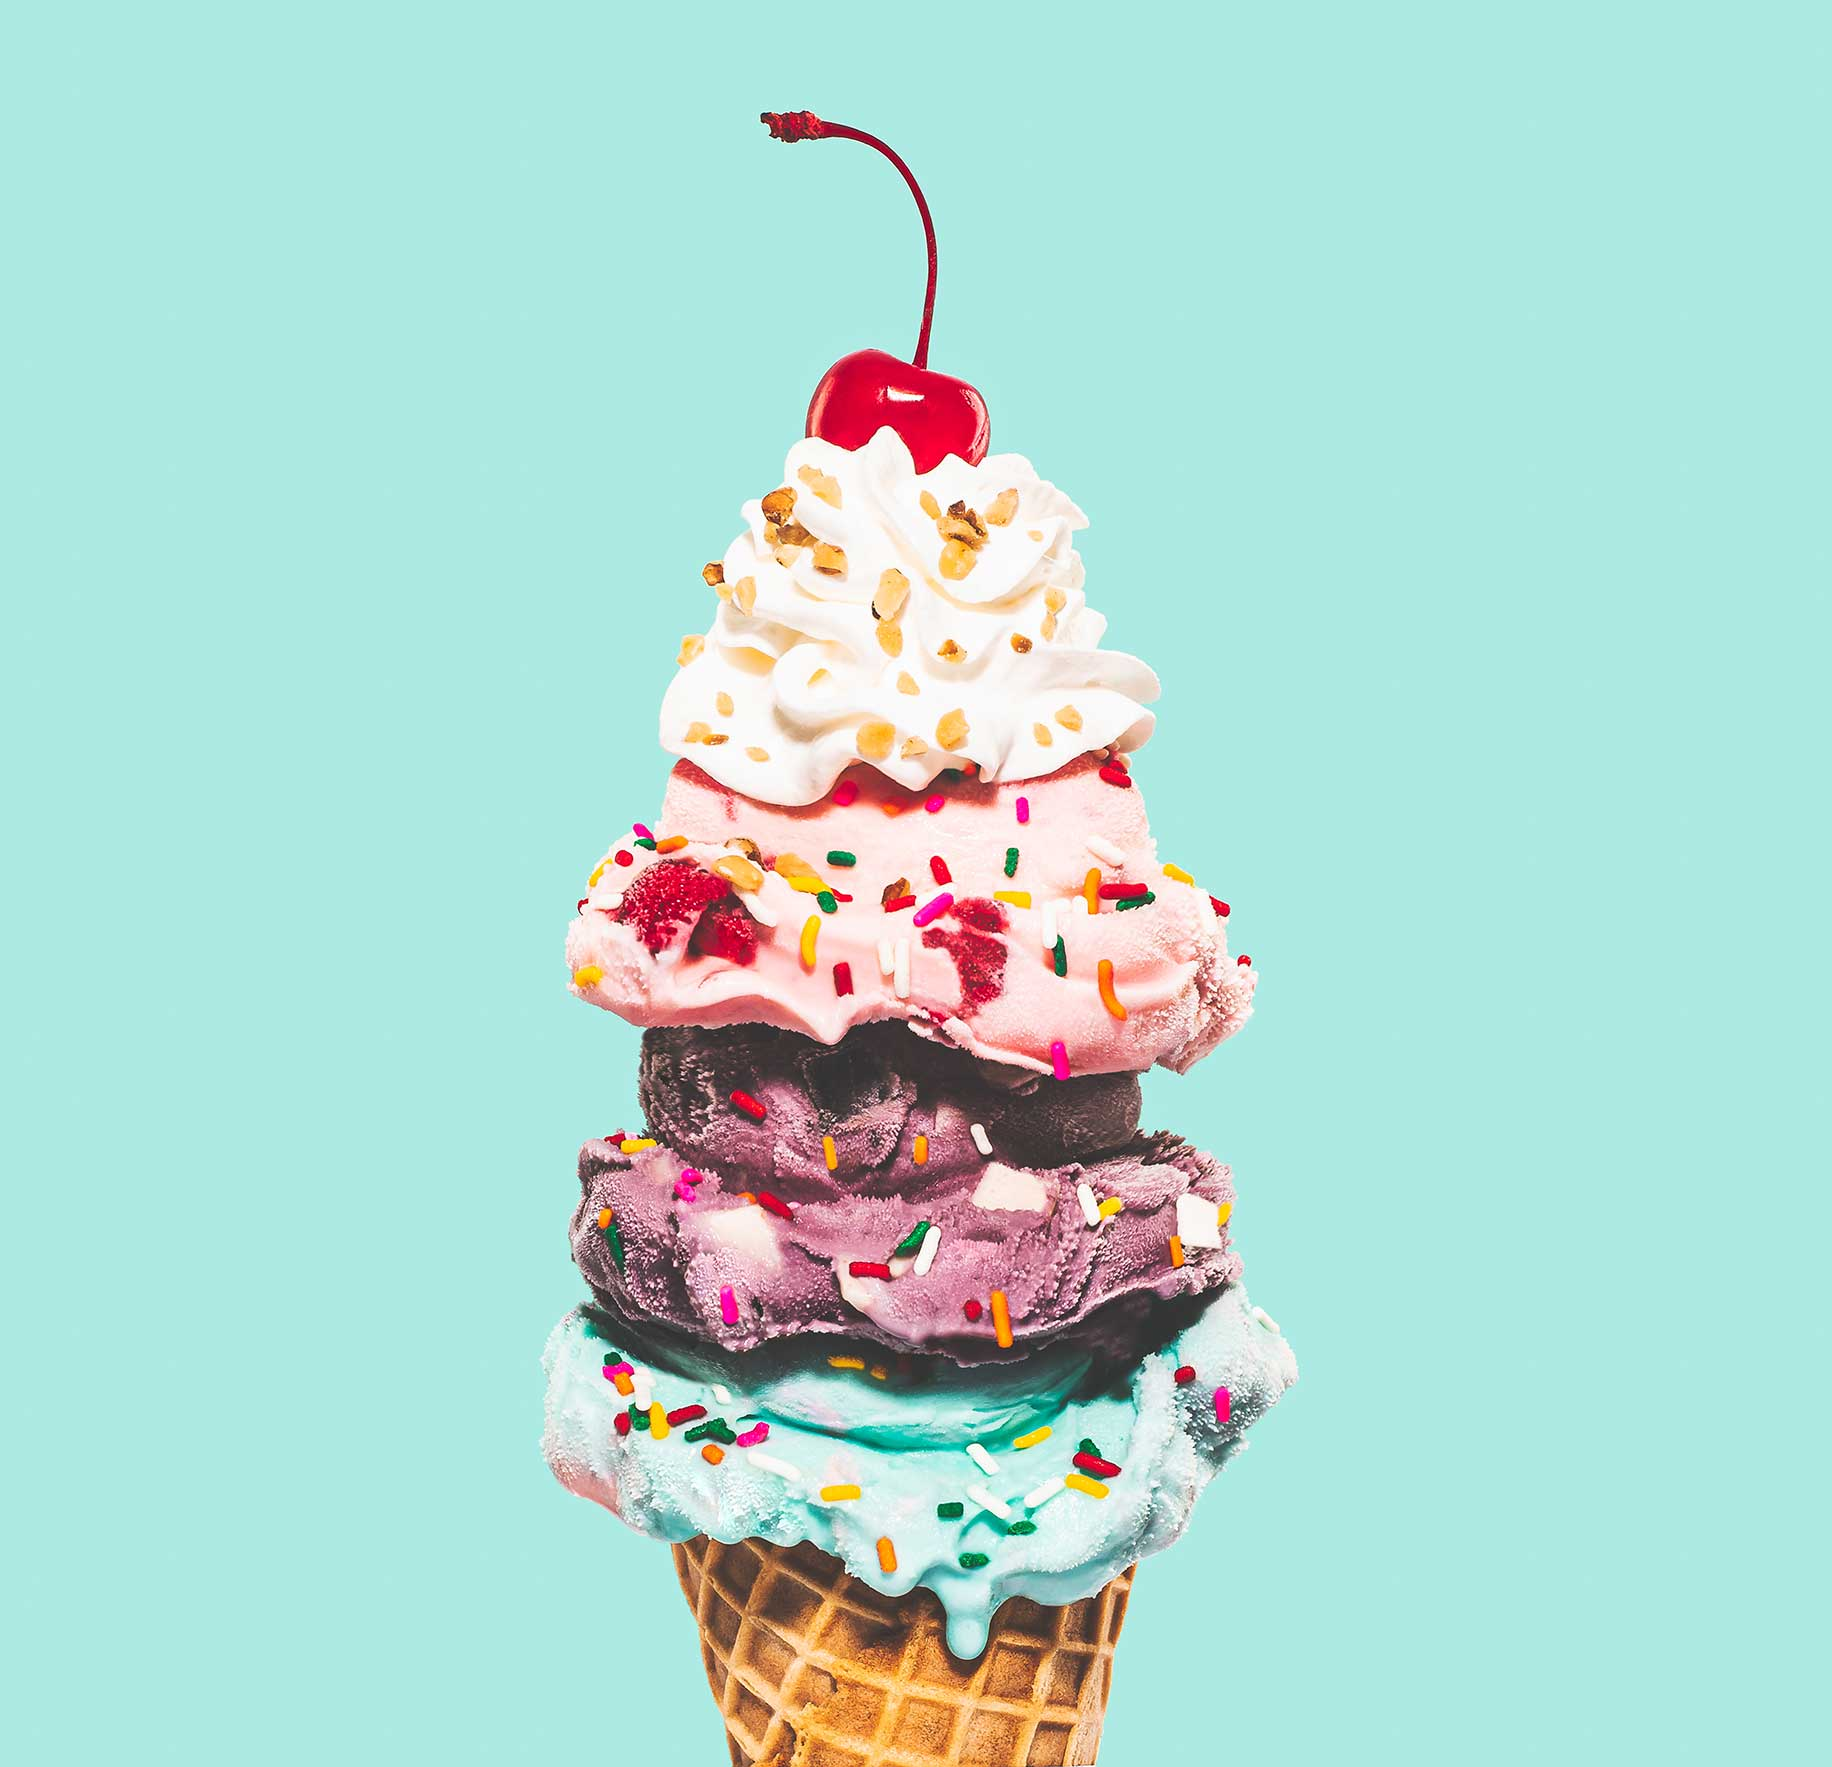 002_SSHLS-IceCreamCover_SSHLS-dzp-IceCream-203-Edit